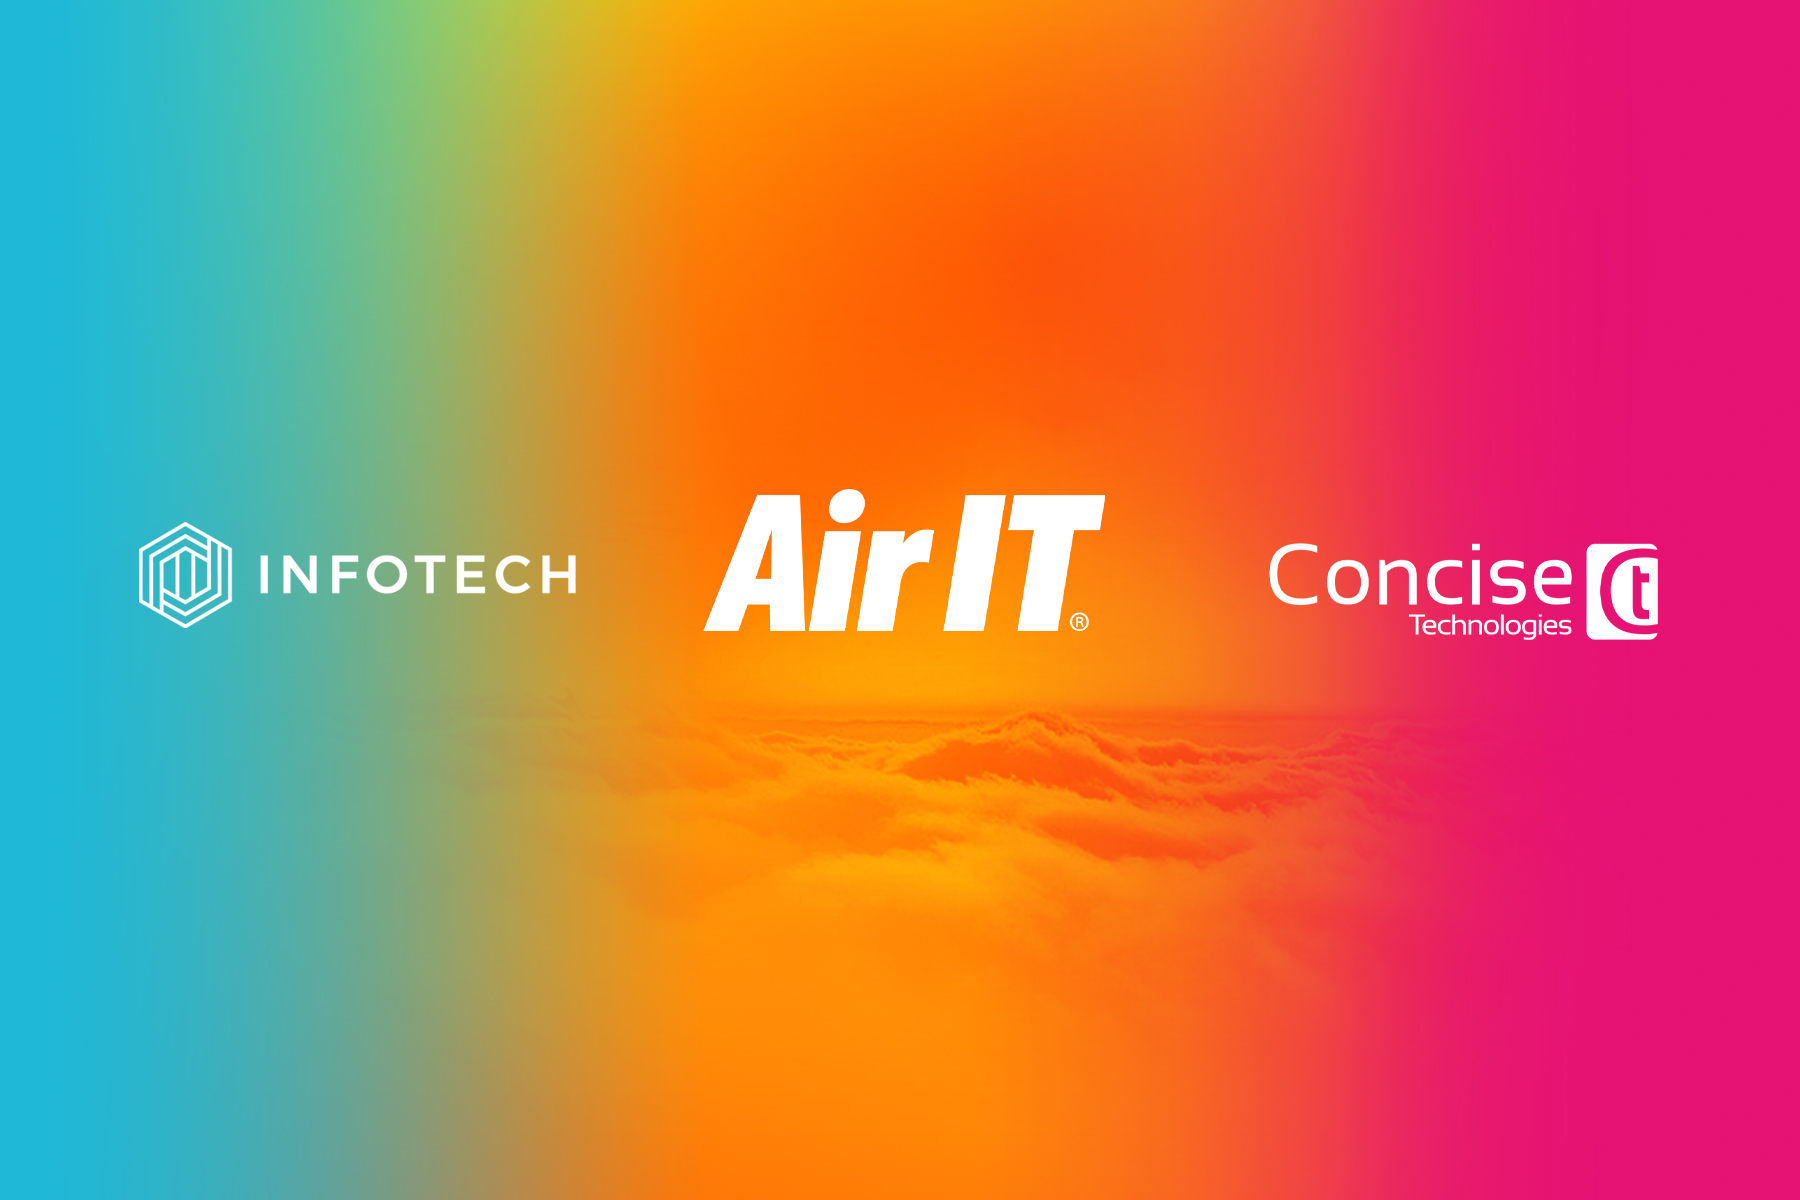 Air IT_Concise and Infotech